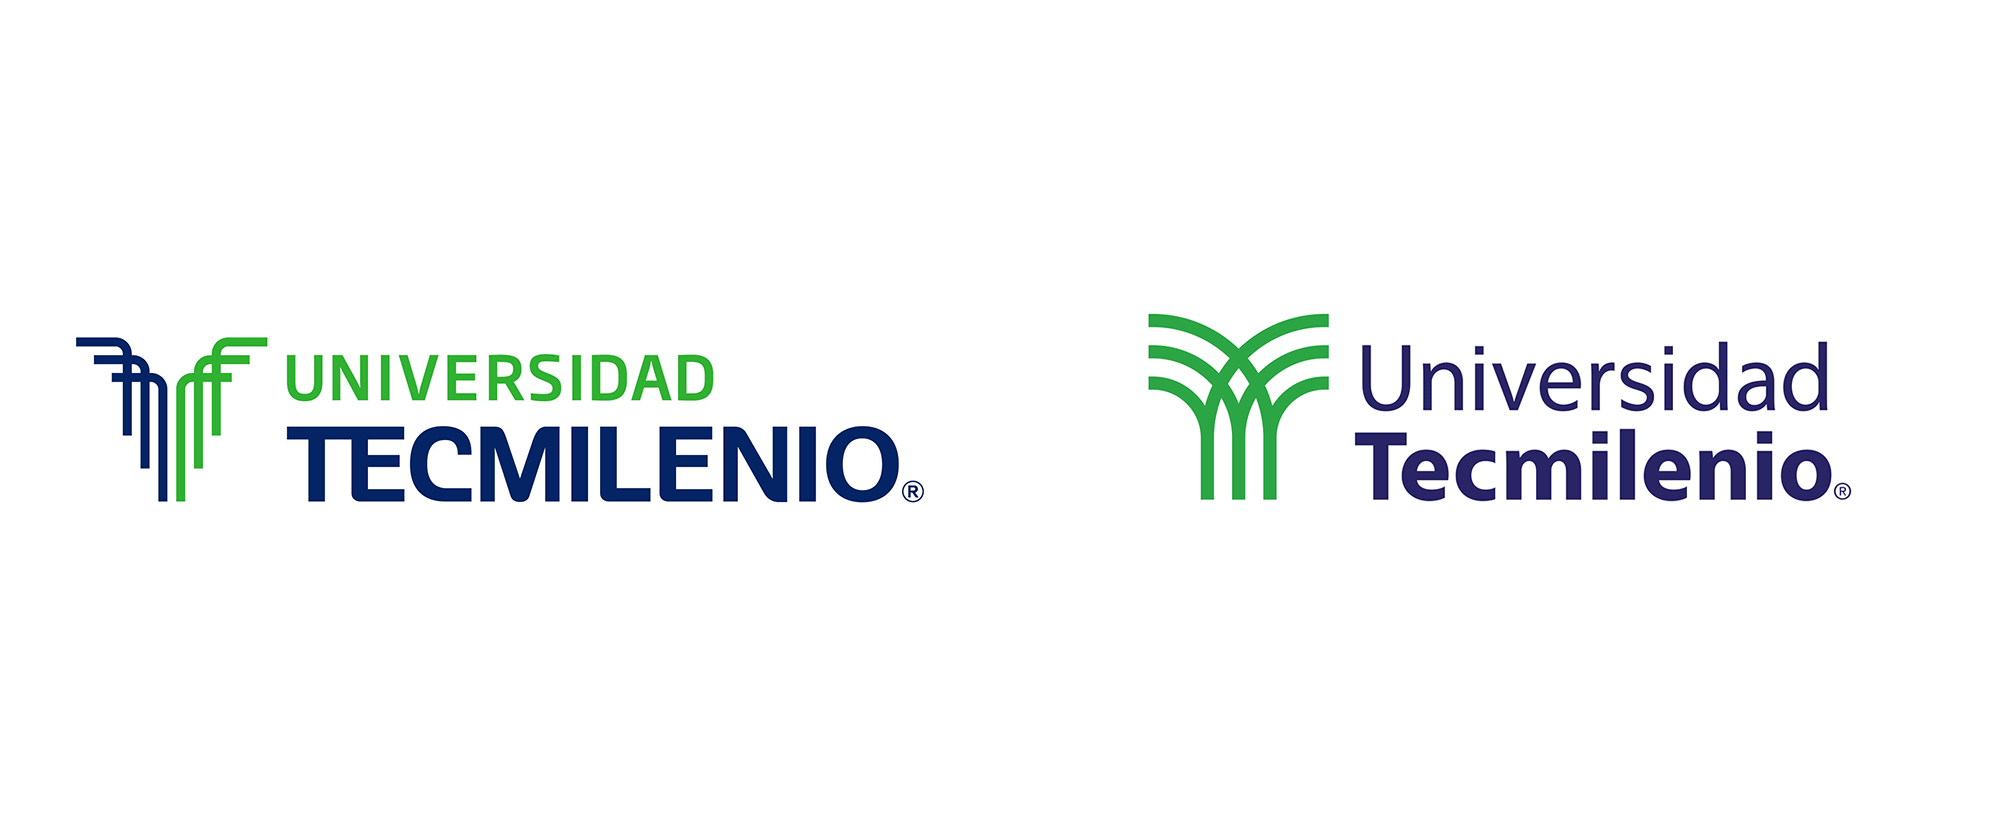 New Logo and Identity for Universidad TecMilenio by Chermayeff & Geismar & Haviv